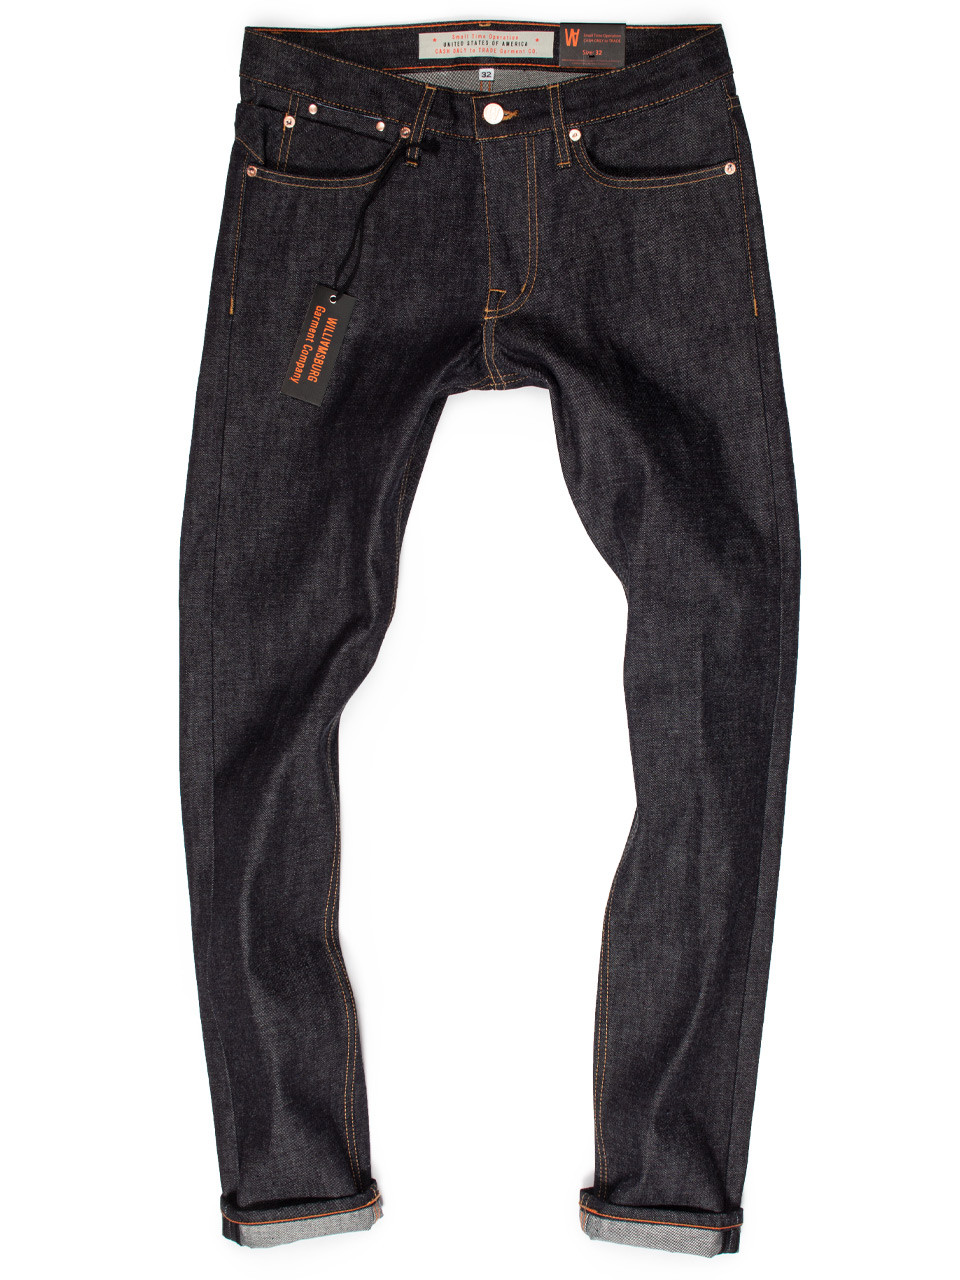 1c09b2be8af New Hope Street slim tapered raw denim American made jeans, produced in  13-oz